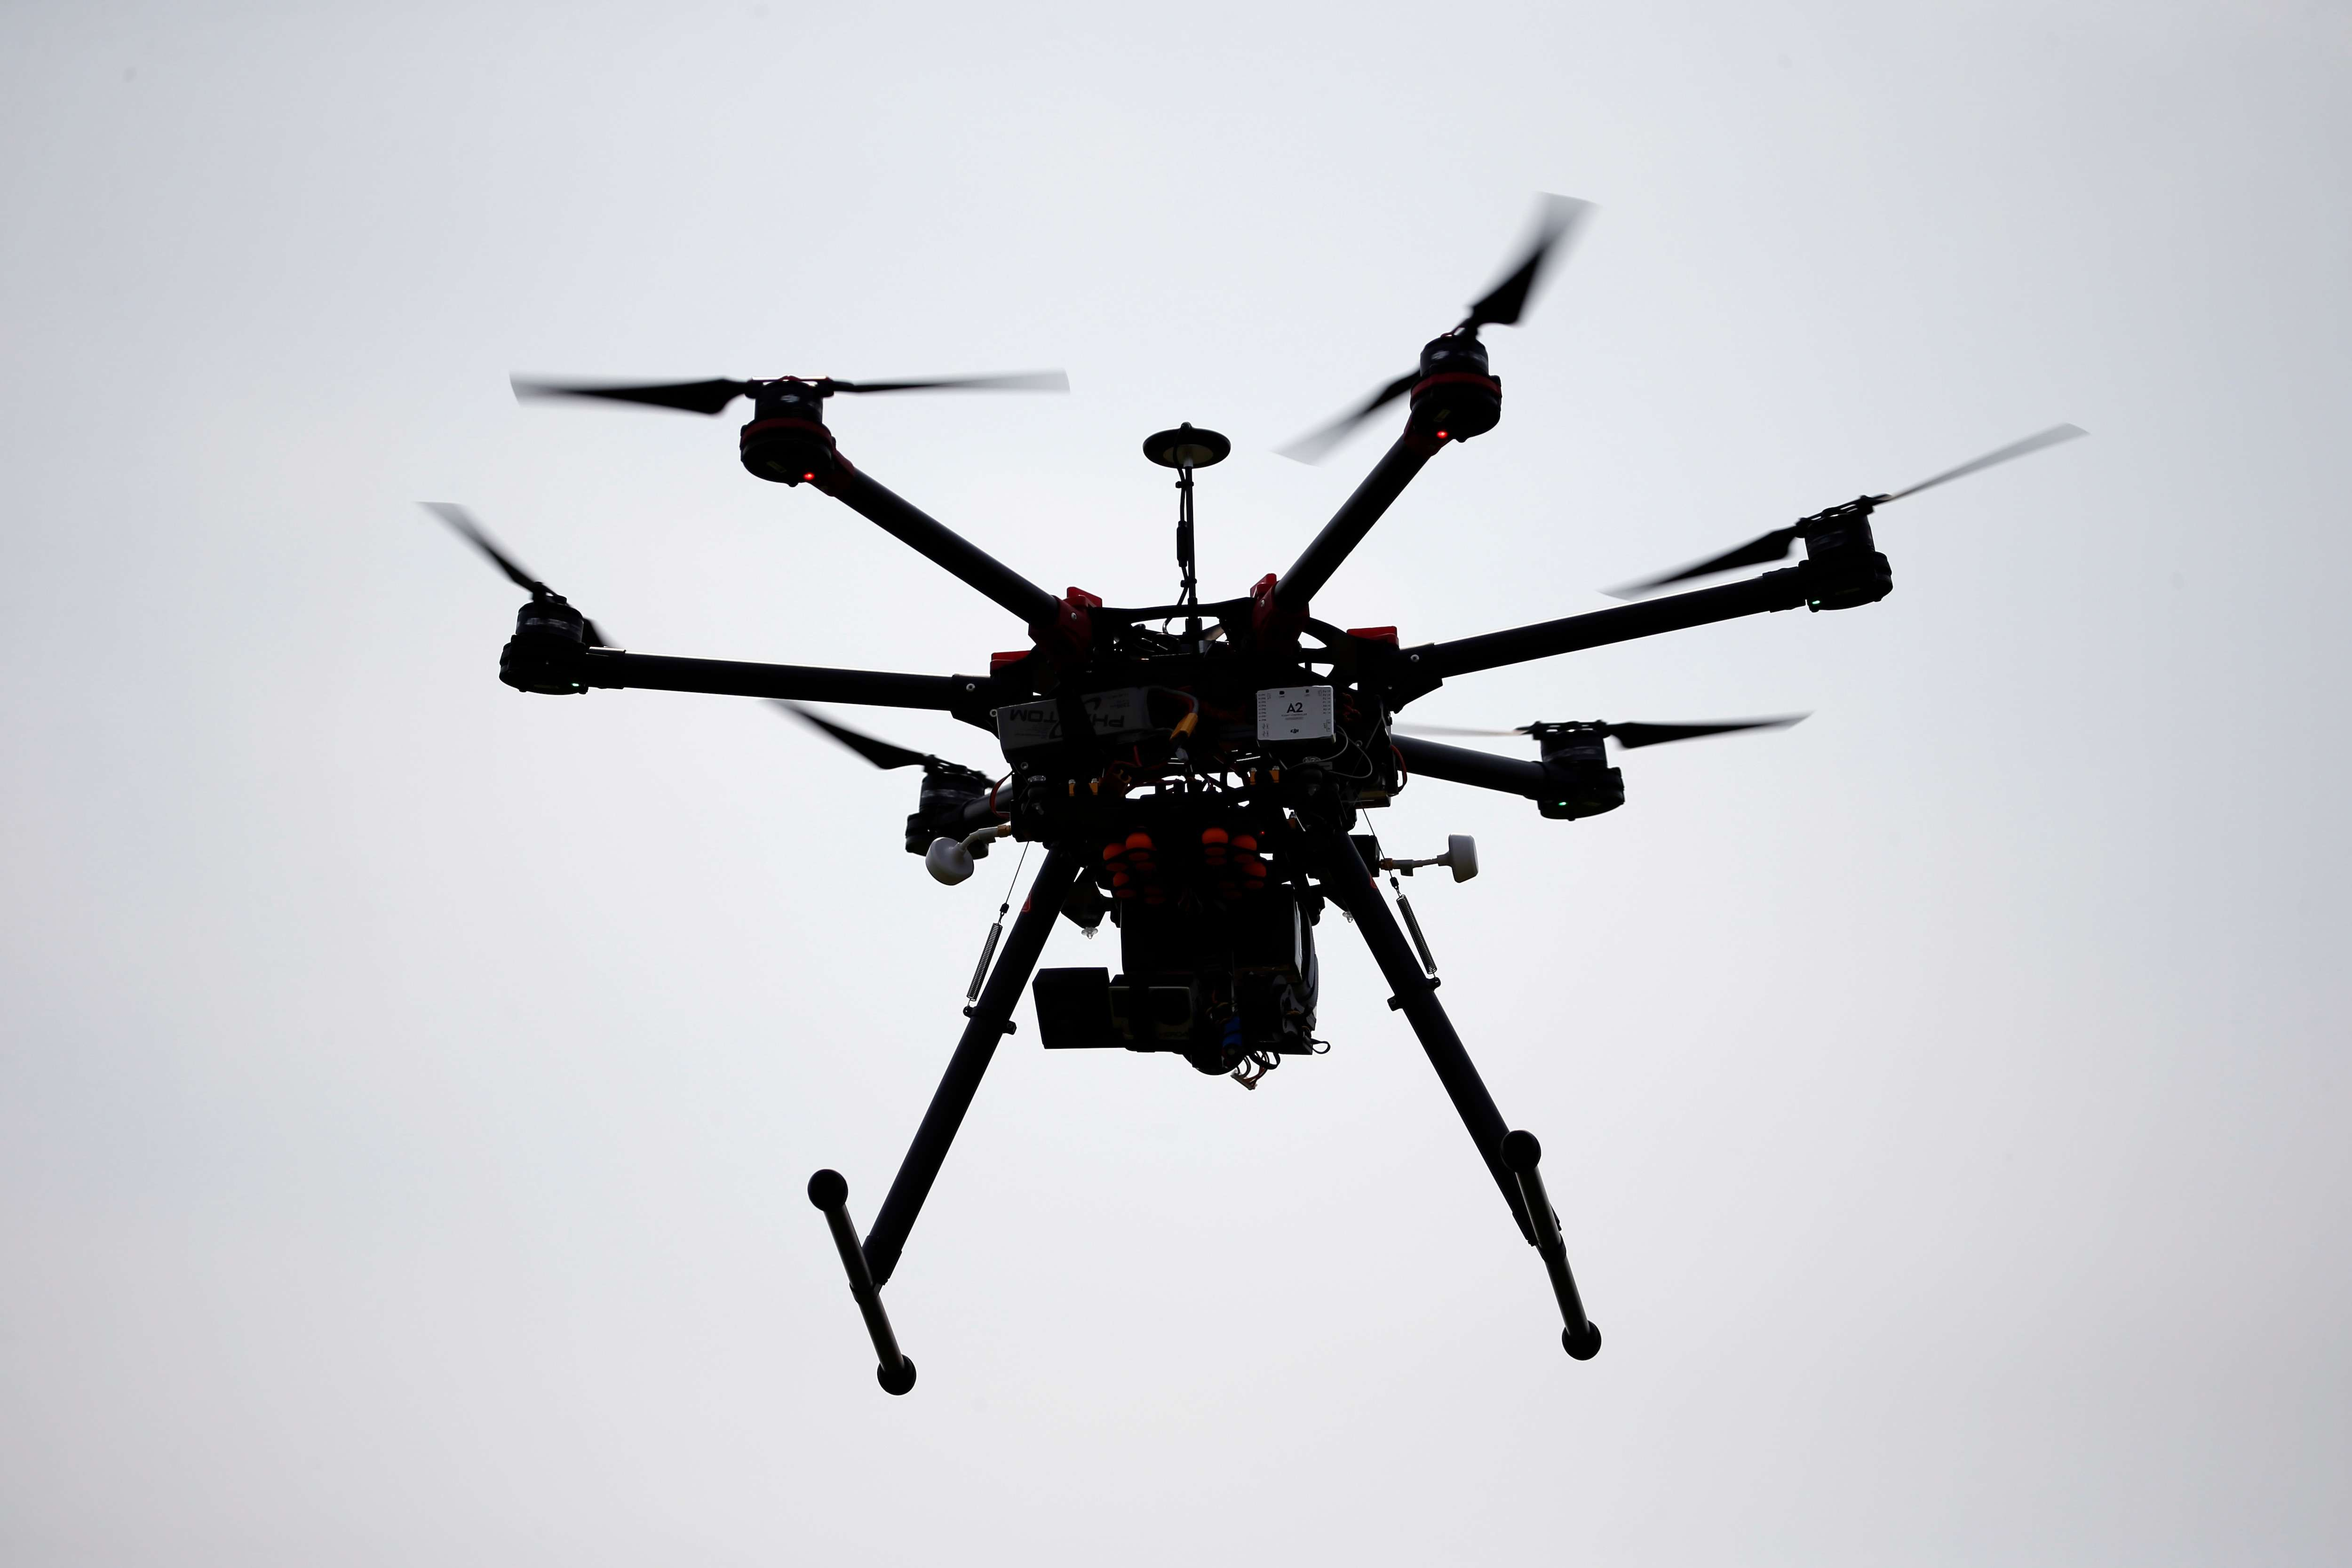 A hexacopter drone is flown during a drone demonstration at a farm and winery on potential use for board members of the National Corn Growers, Thursday, June 11, 2015 in Cordova, Md. (AP Photo/Alex Brandon)